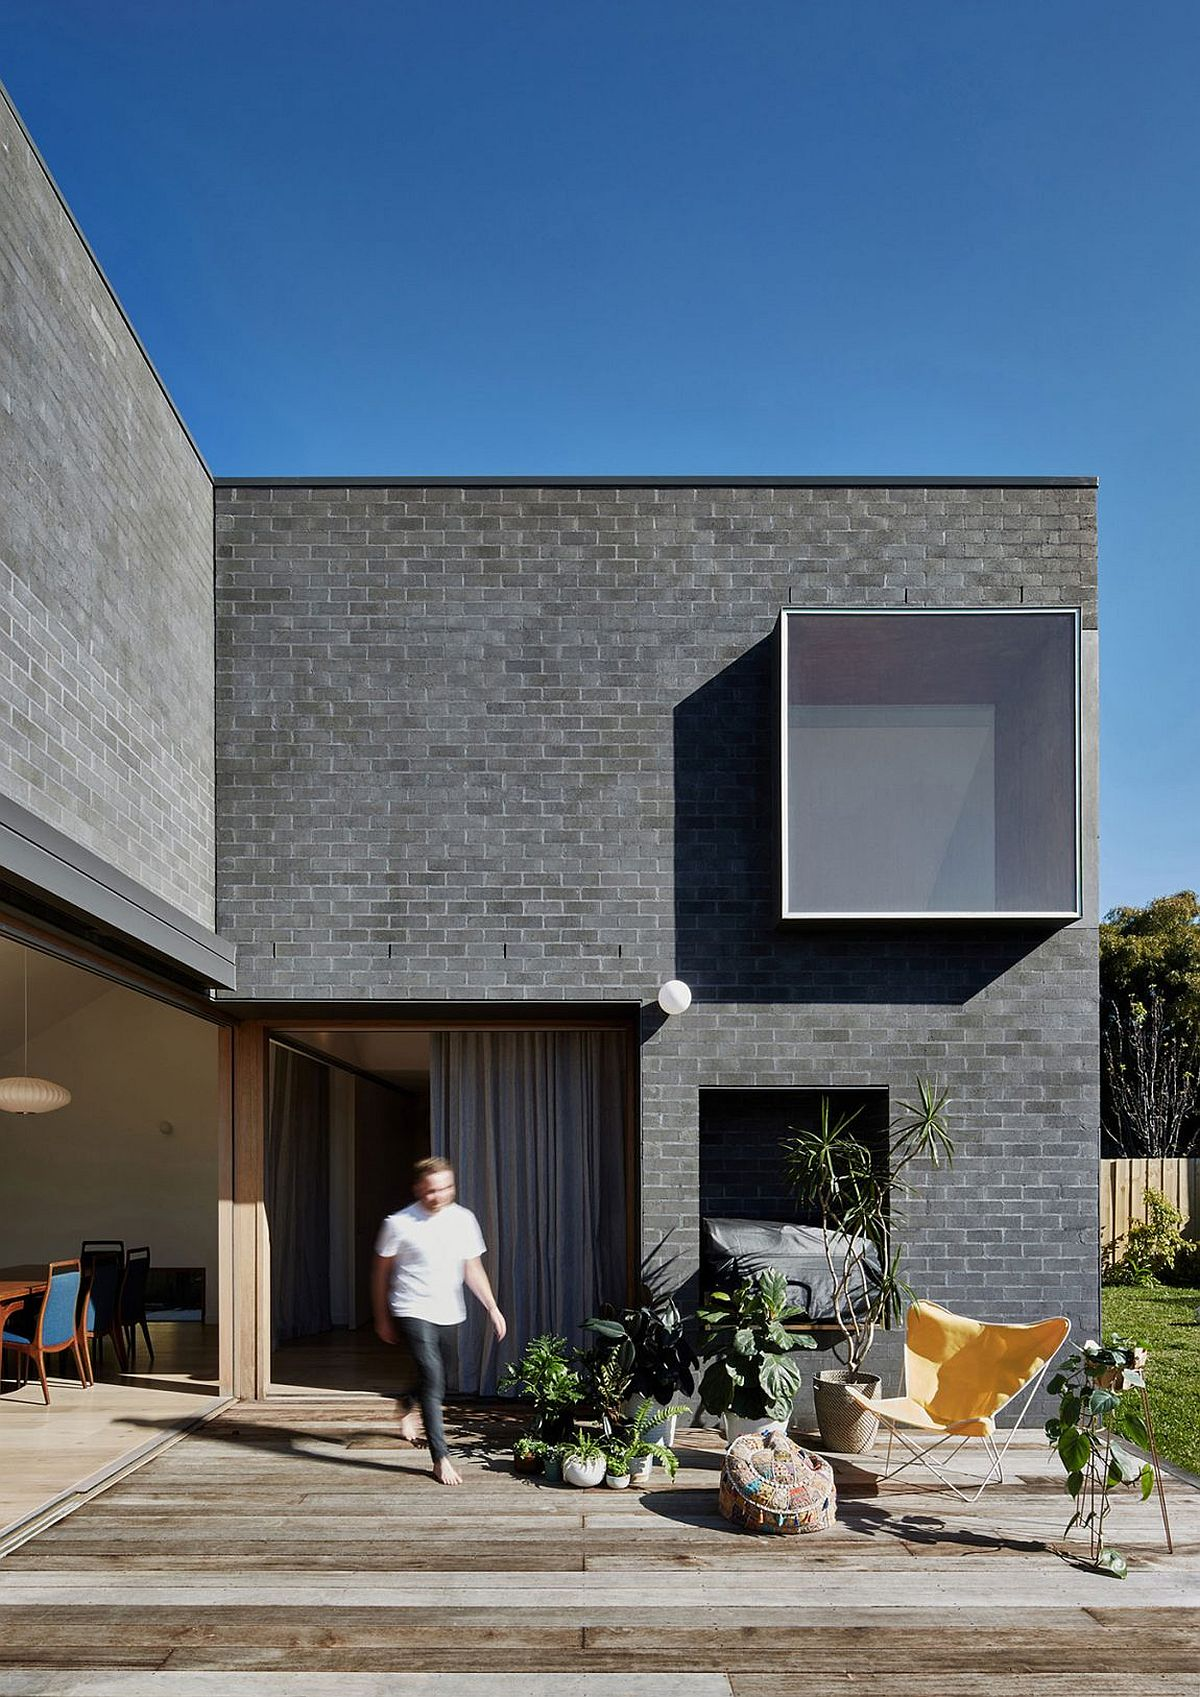 Gray brick exterior of the house gives it a modern appeal